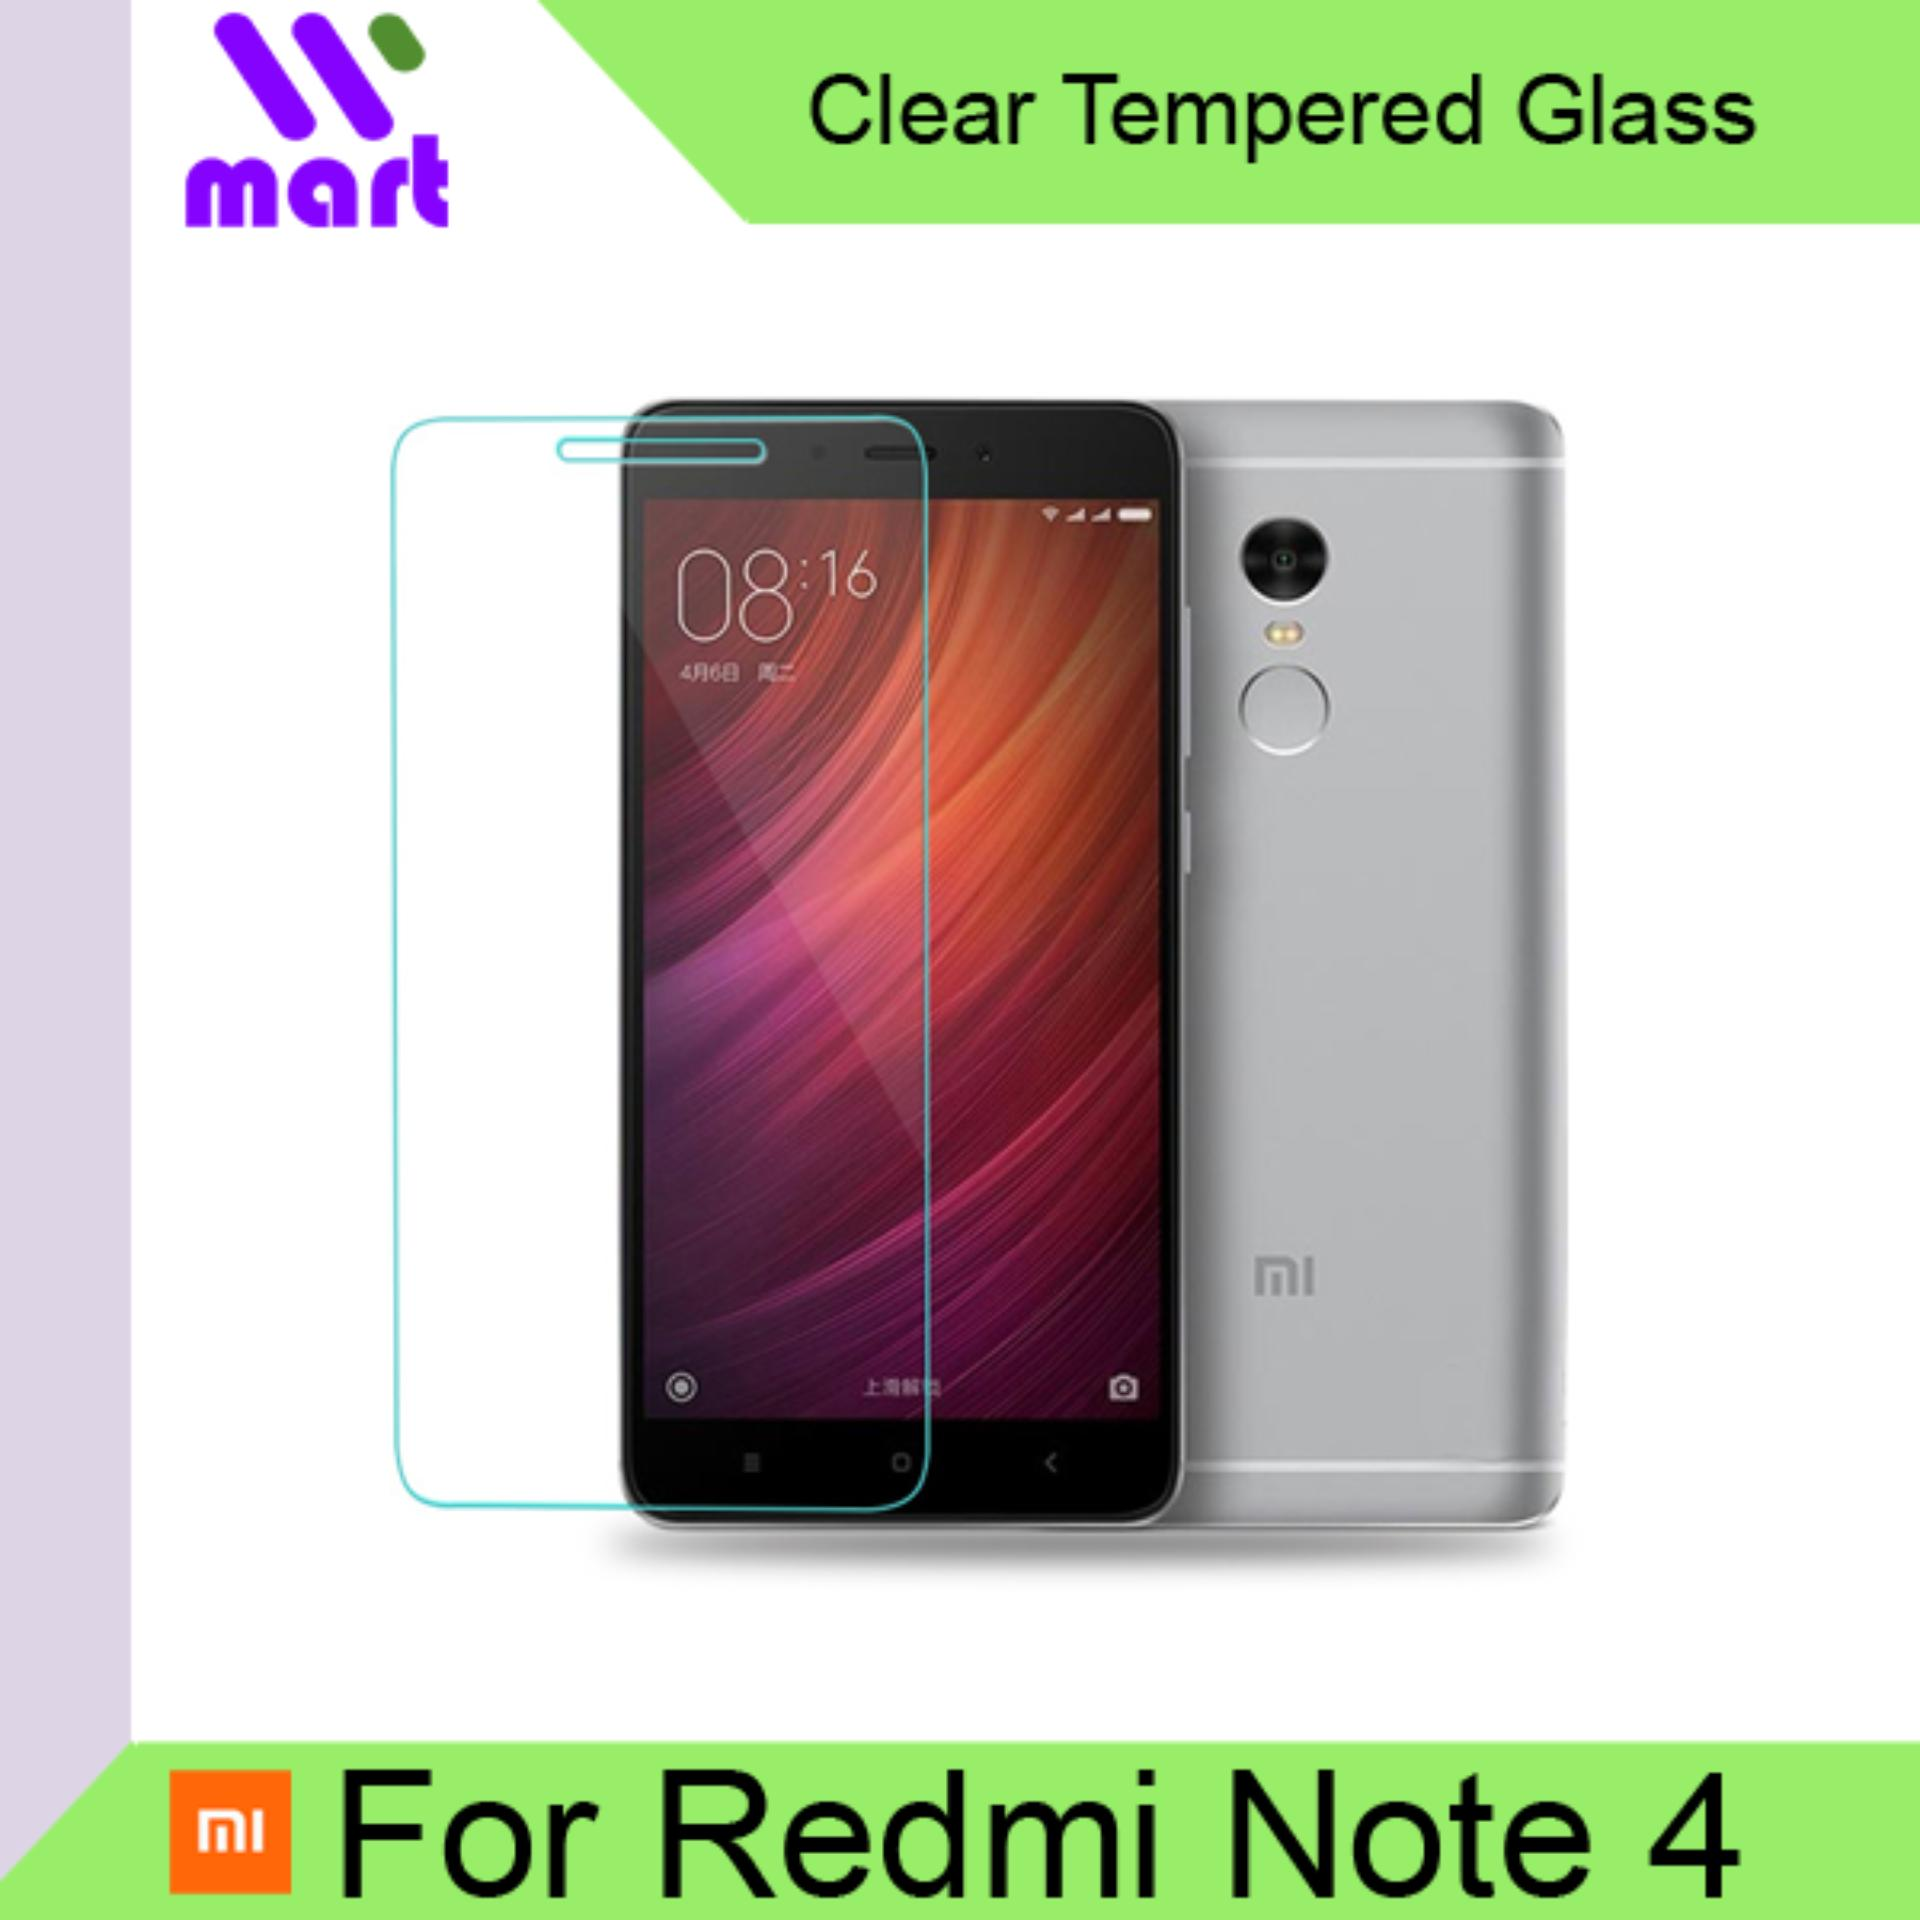 Tempered Glass Screen Protector (Clear) For Xiaomi Redmi Note 4